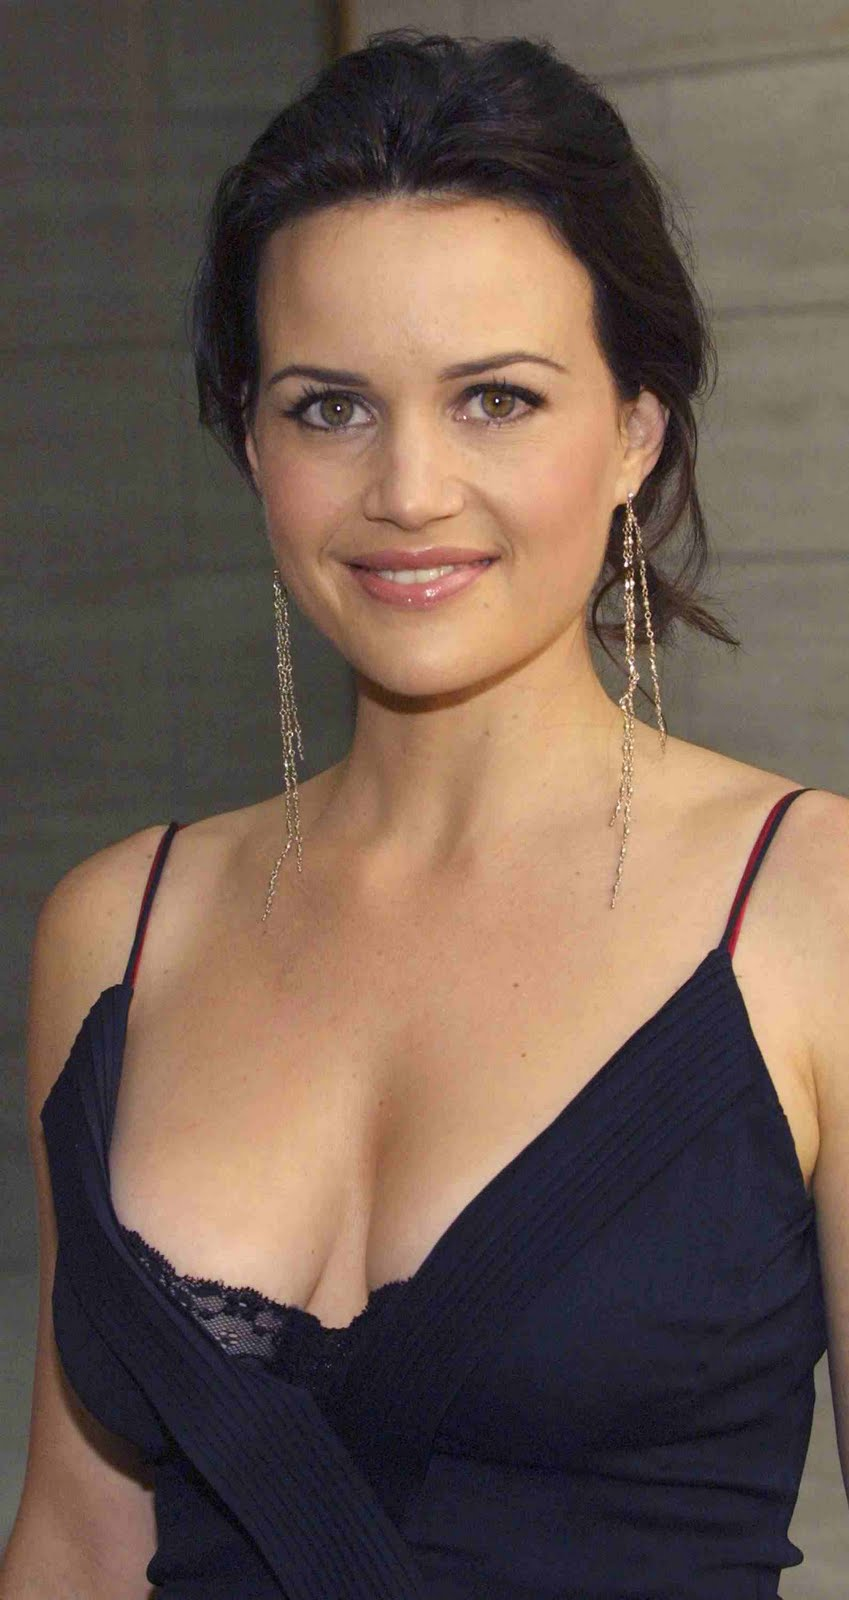 The Agitation of the Mind: Carla Gugino